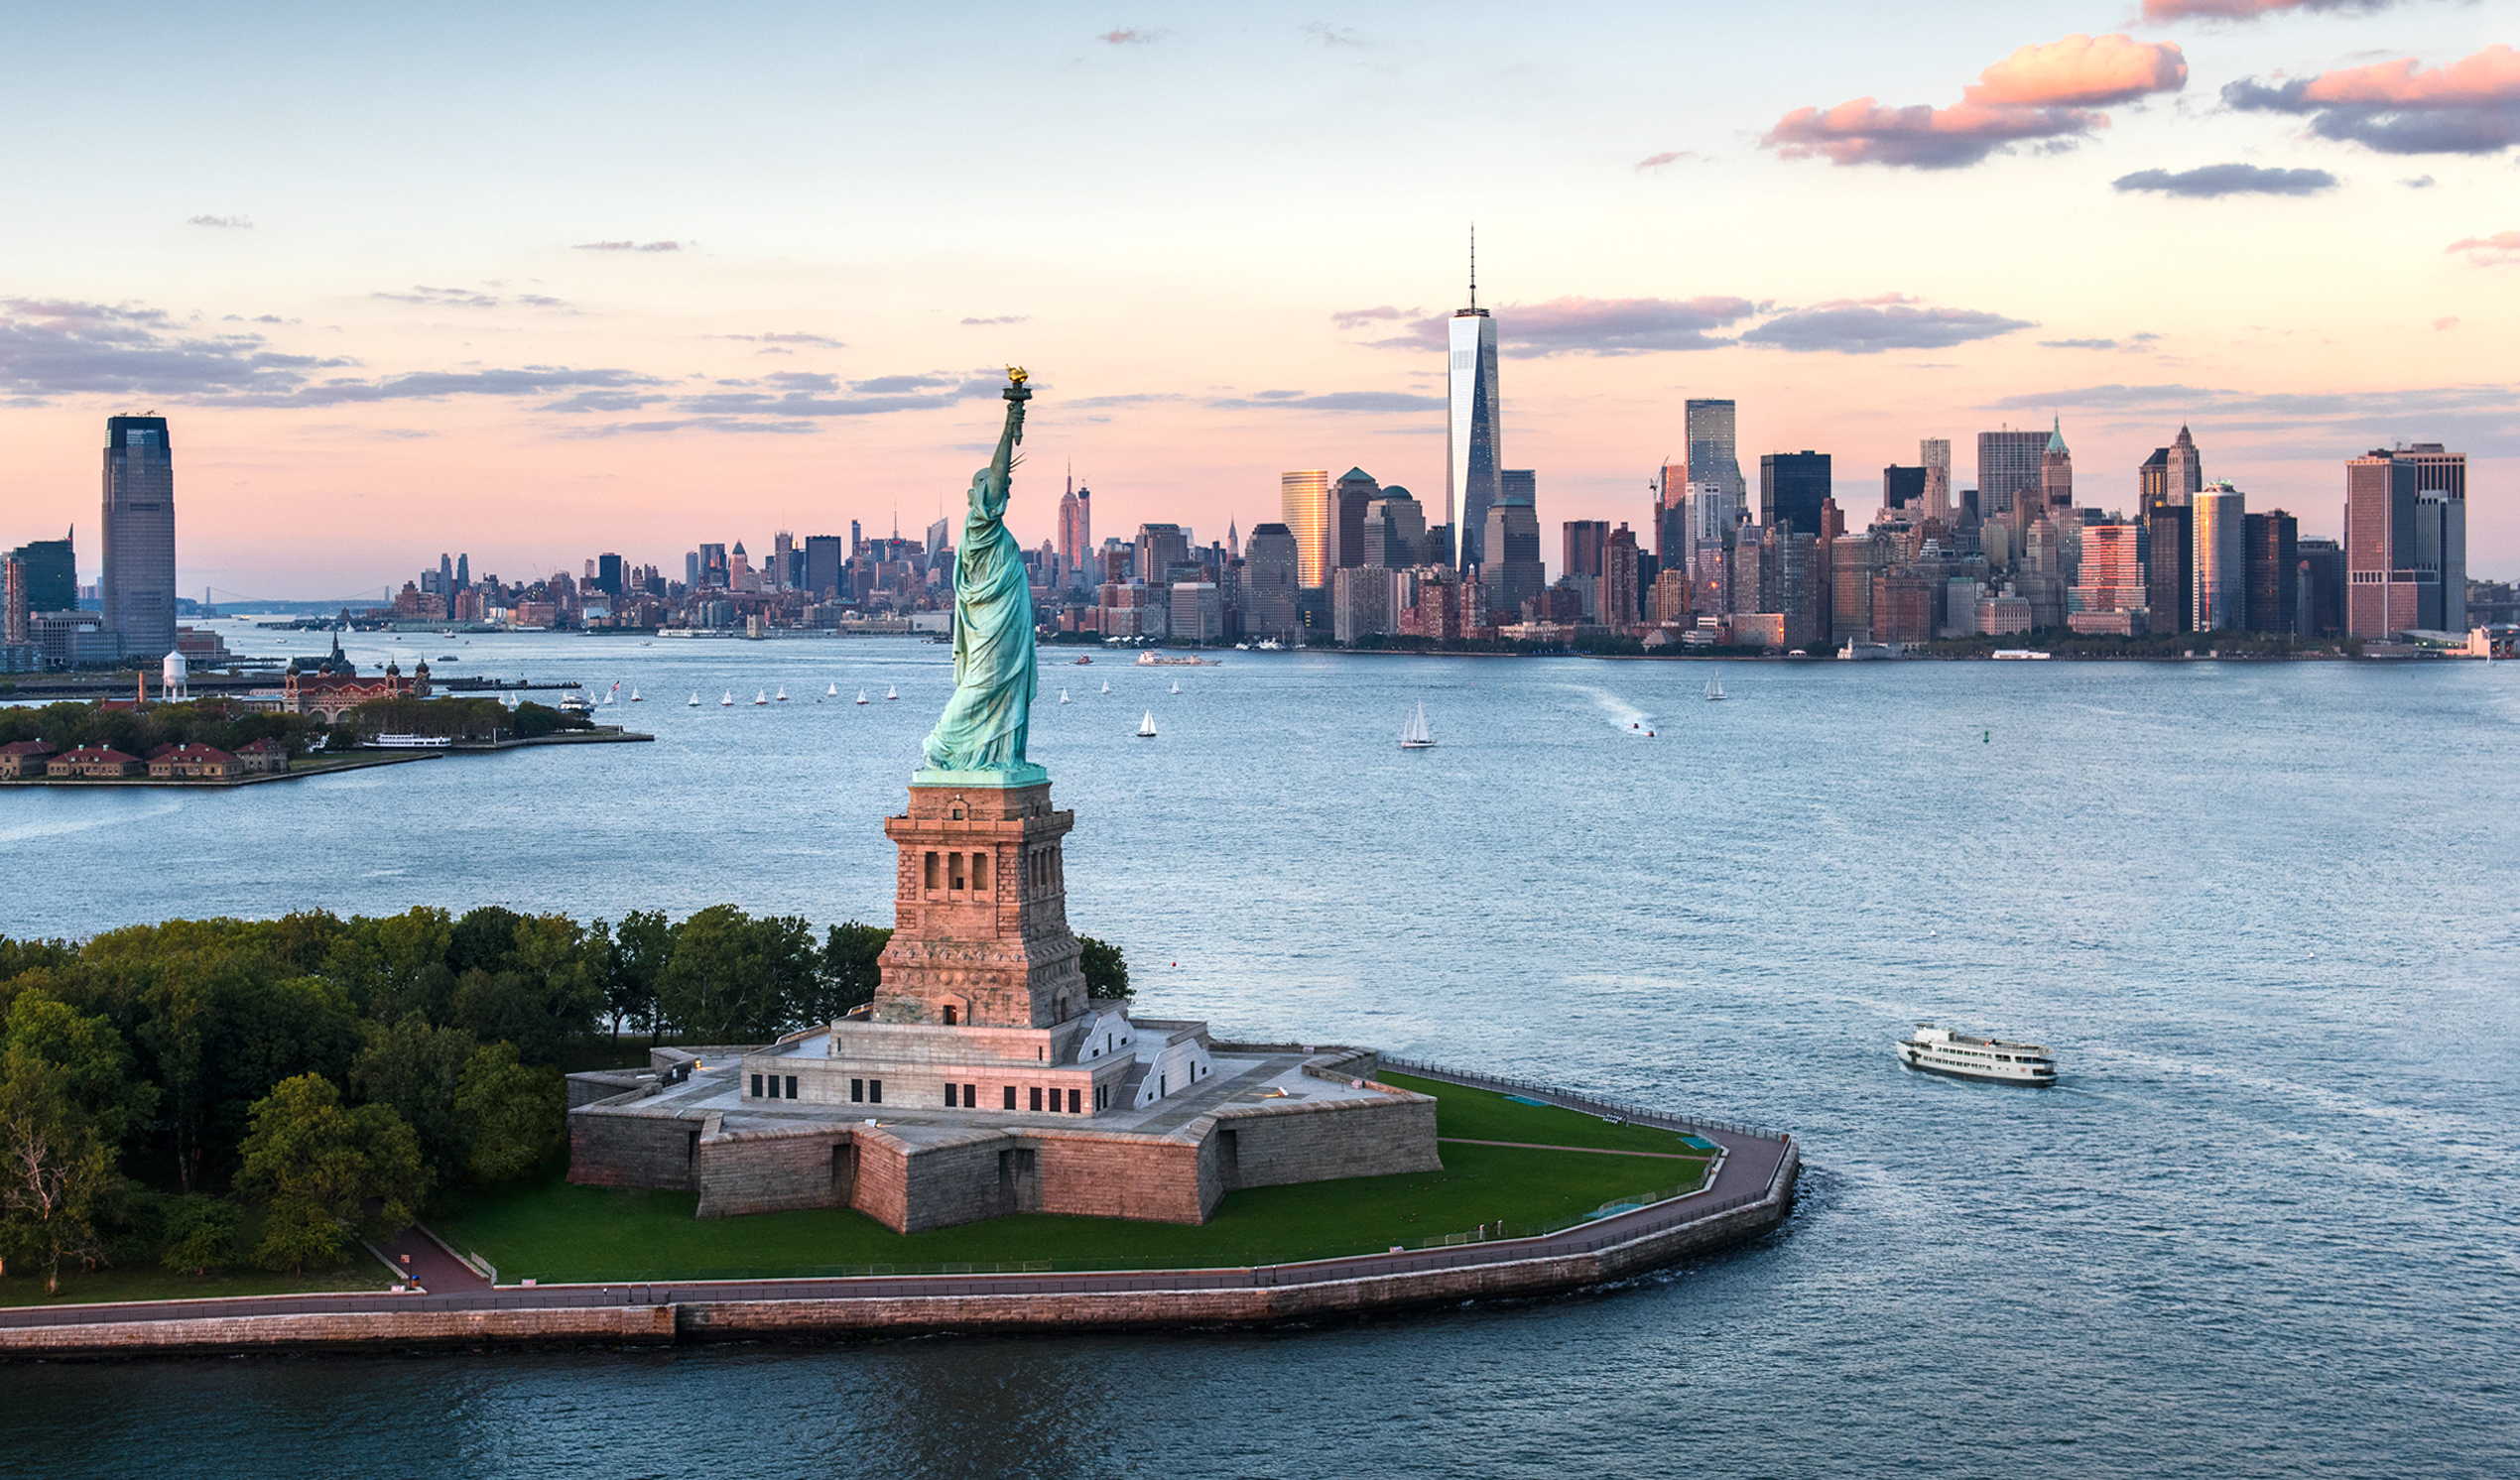 Statue-of-Liberty-tuong-nu-than-tu-do-new-york-mixtourist